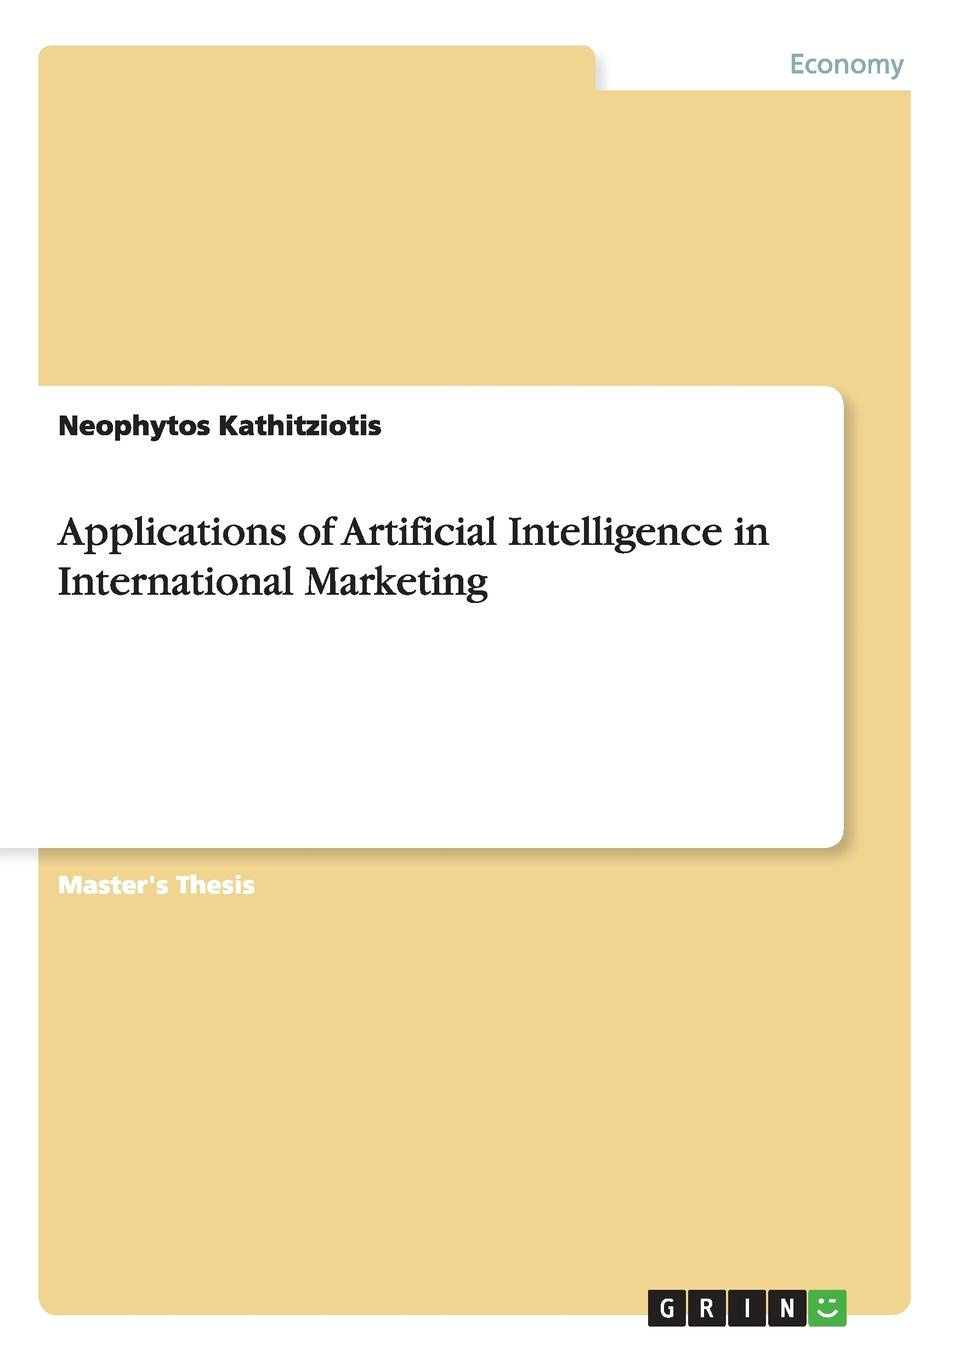 Фото - Neophytos Kathitziotis Applications of Artificial Intelligence in International Marketing zhang honggang cognitive communications distributed artificial intelligence dai regulatory policy and economics implementation isbn 9781118360323